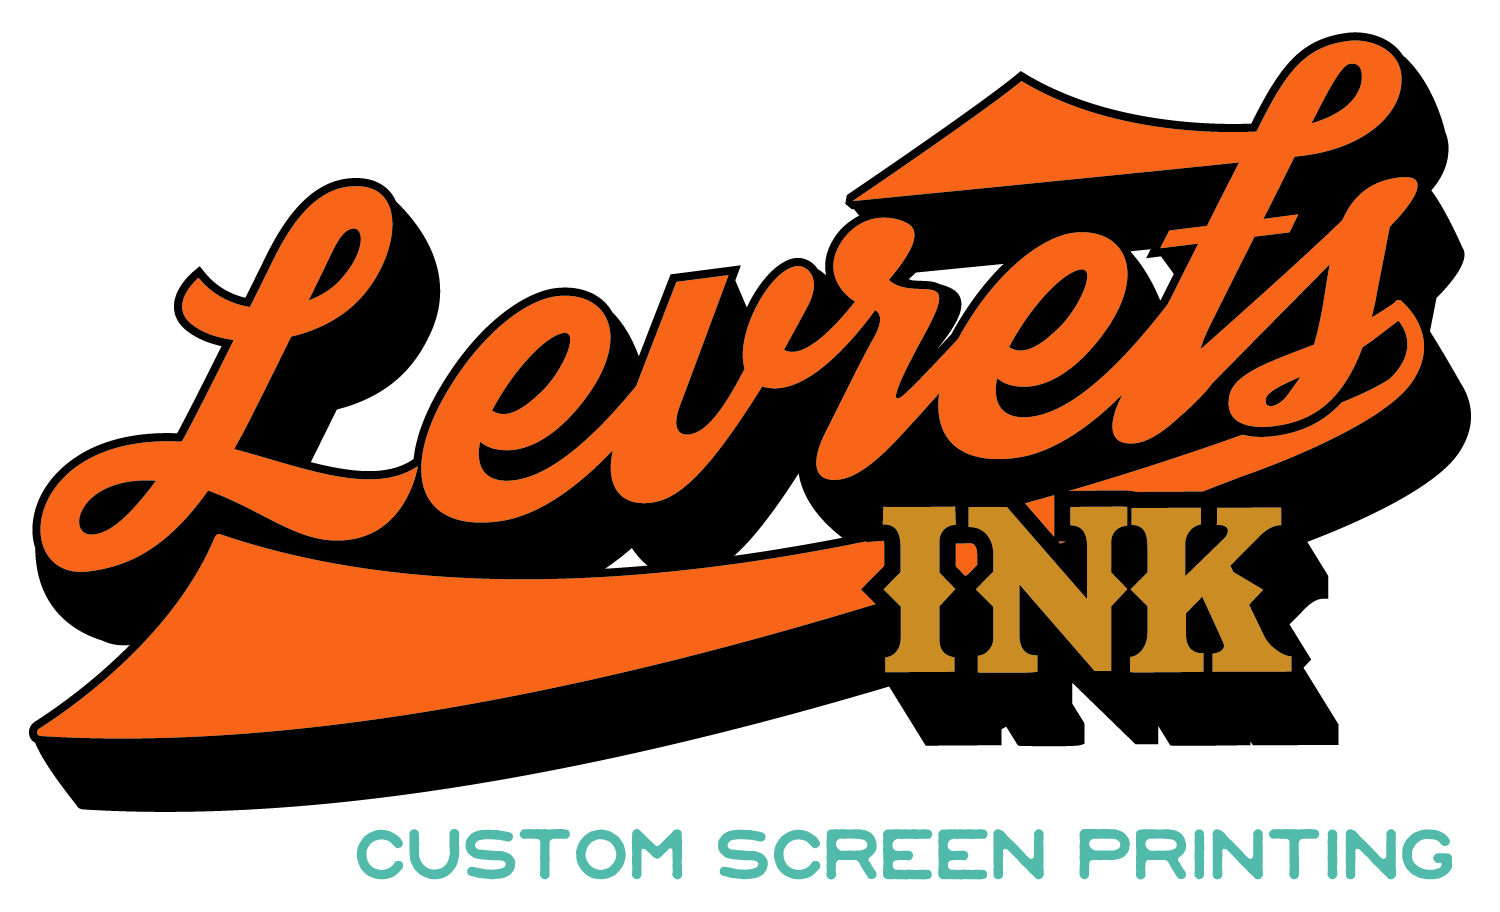 Levrets Ink Custom Screen Printing